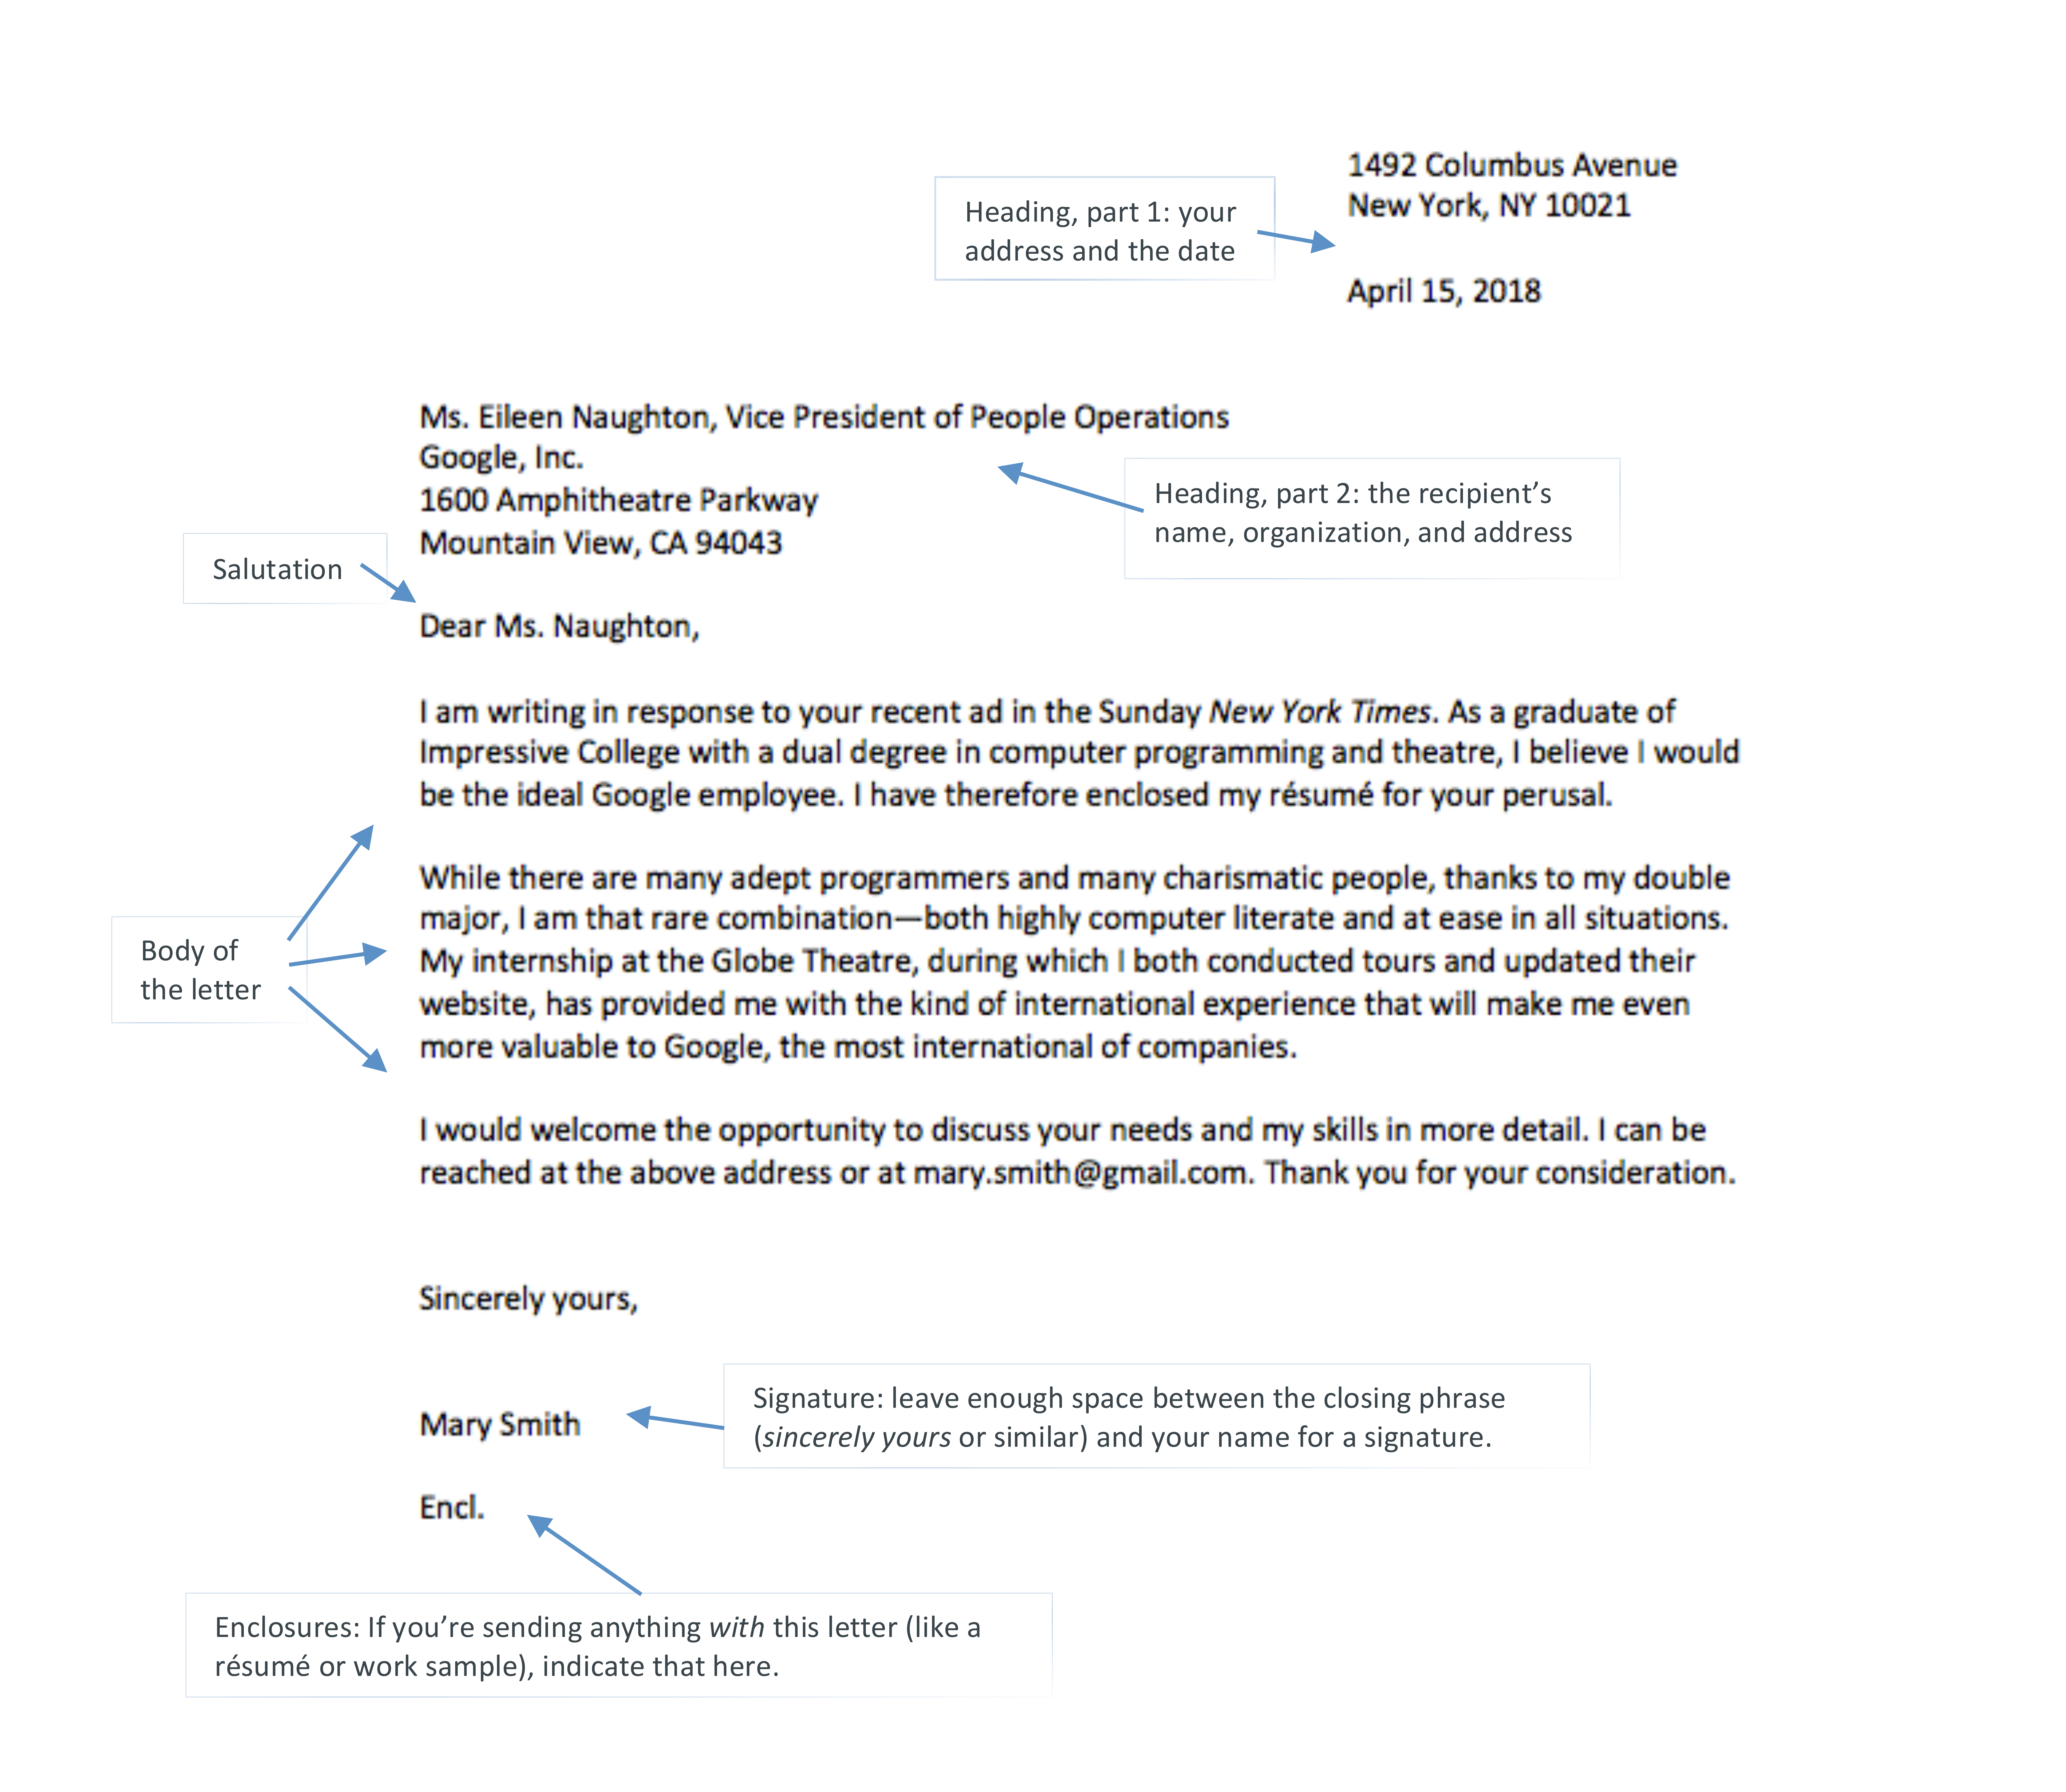 How Long Should A Cover Letter Be The Ideal Cover Letter Length: Sample Letter Structure